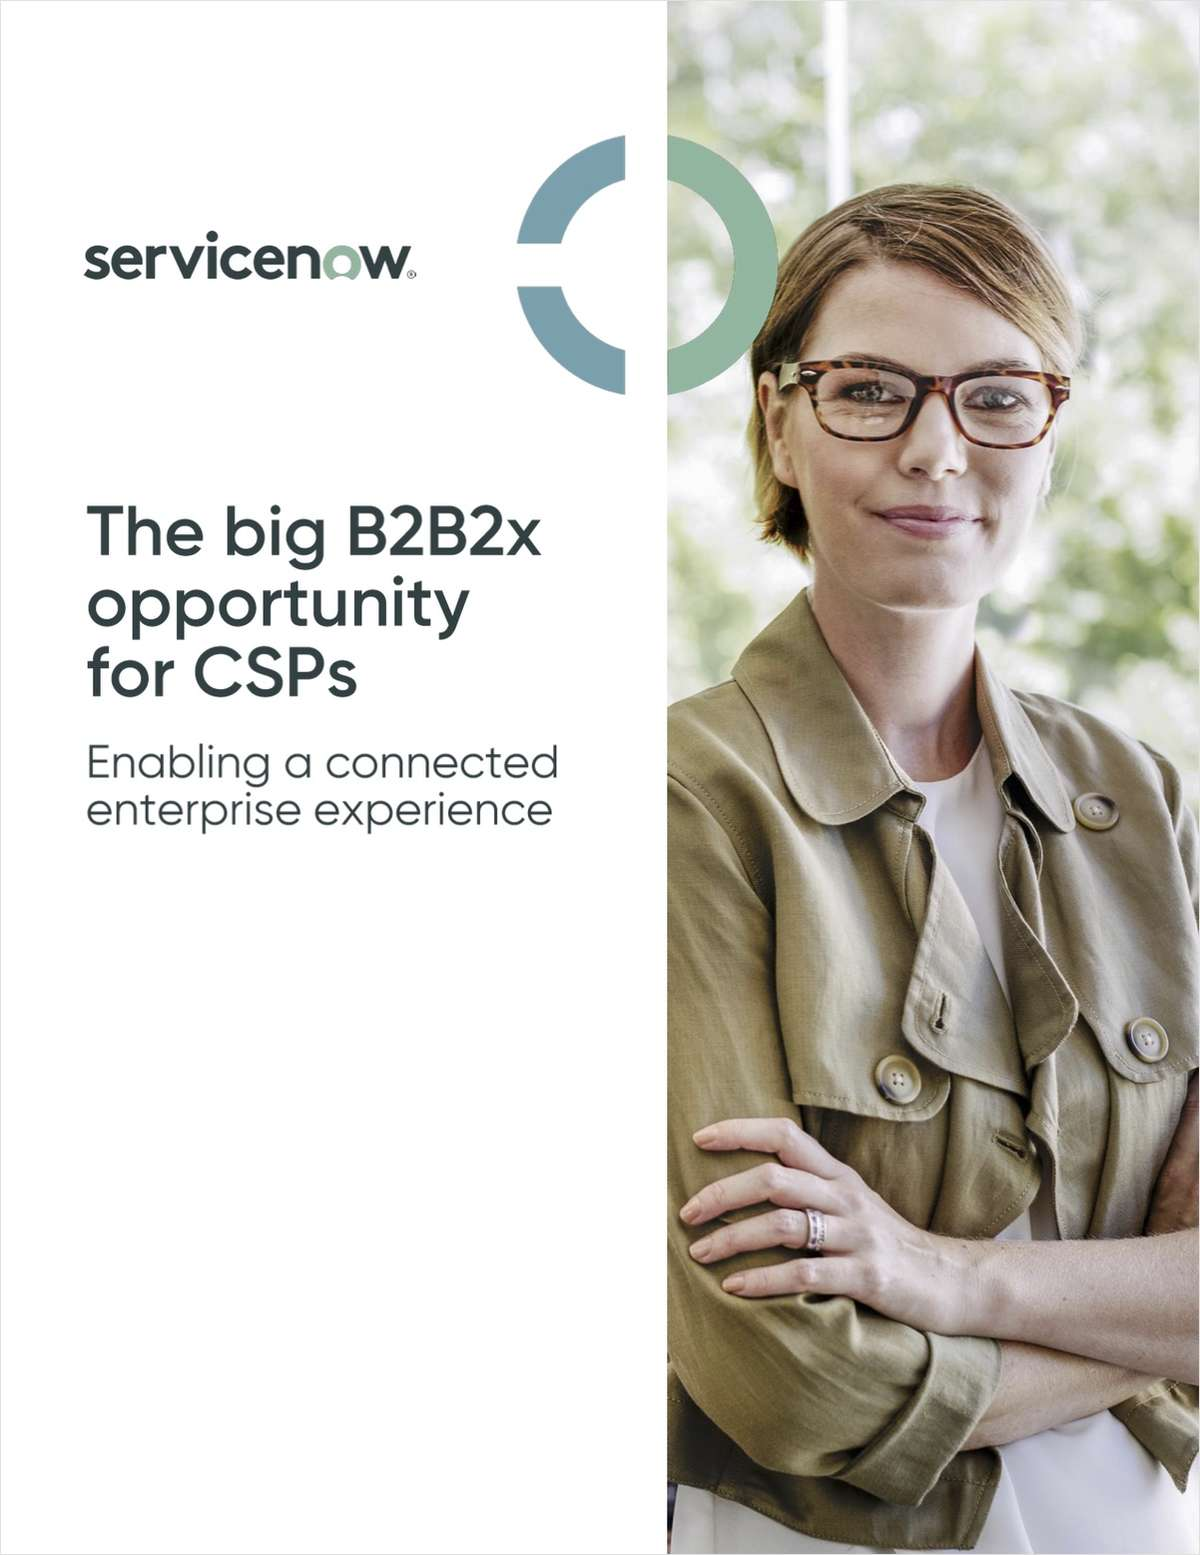 The big B2B2x opportunity for CSPs